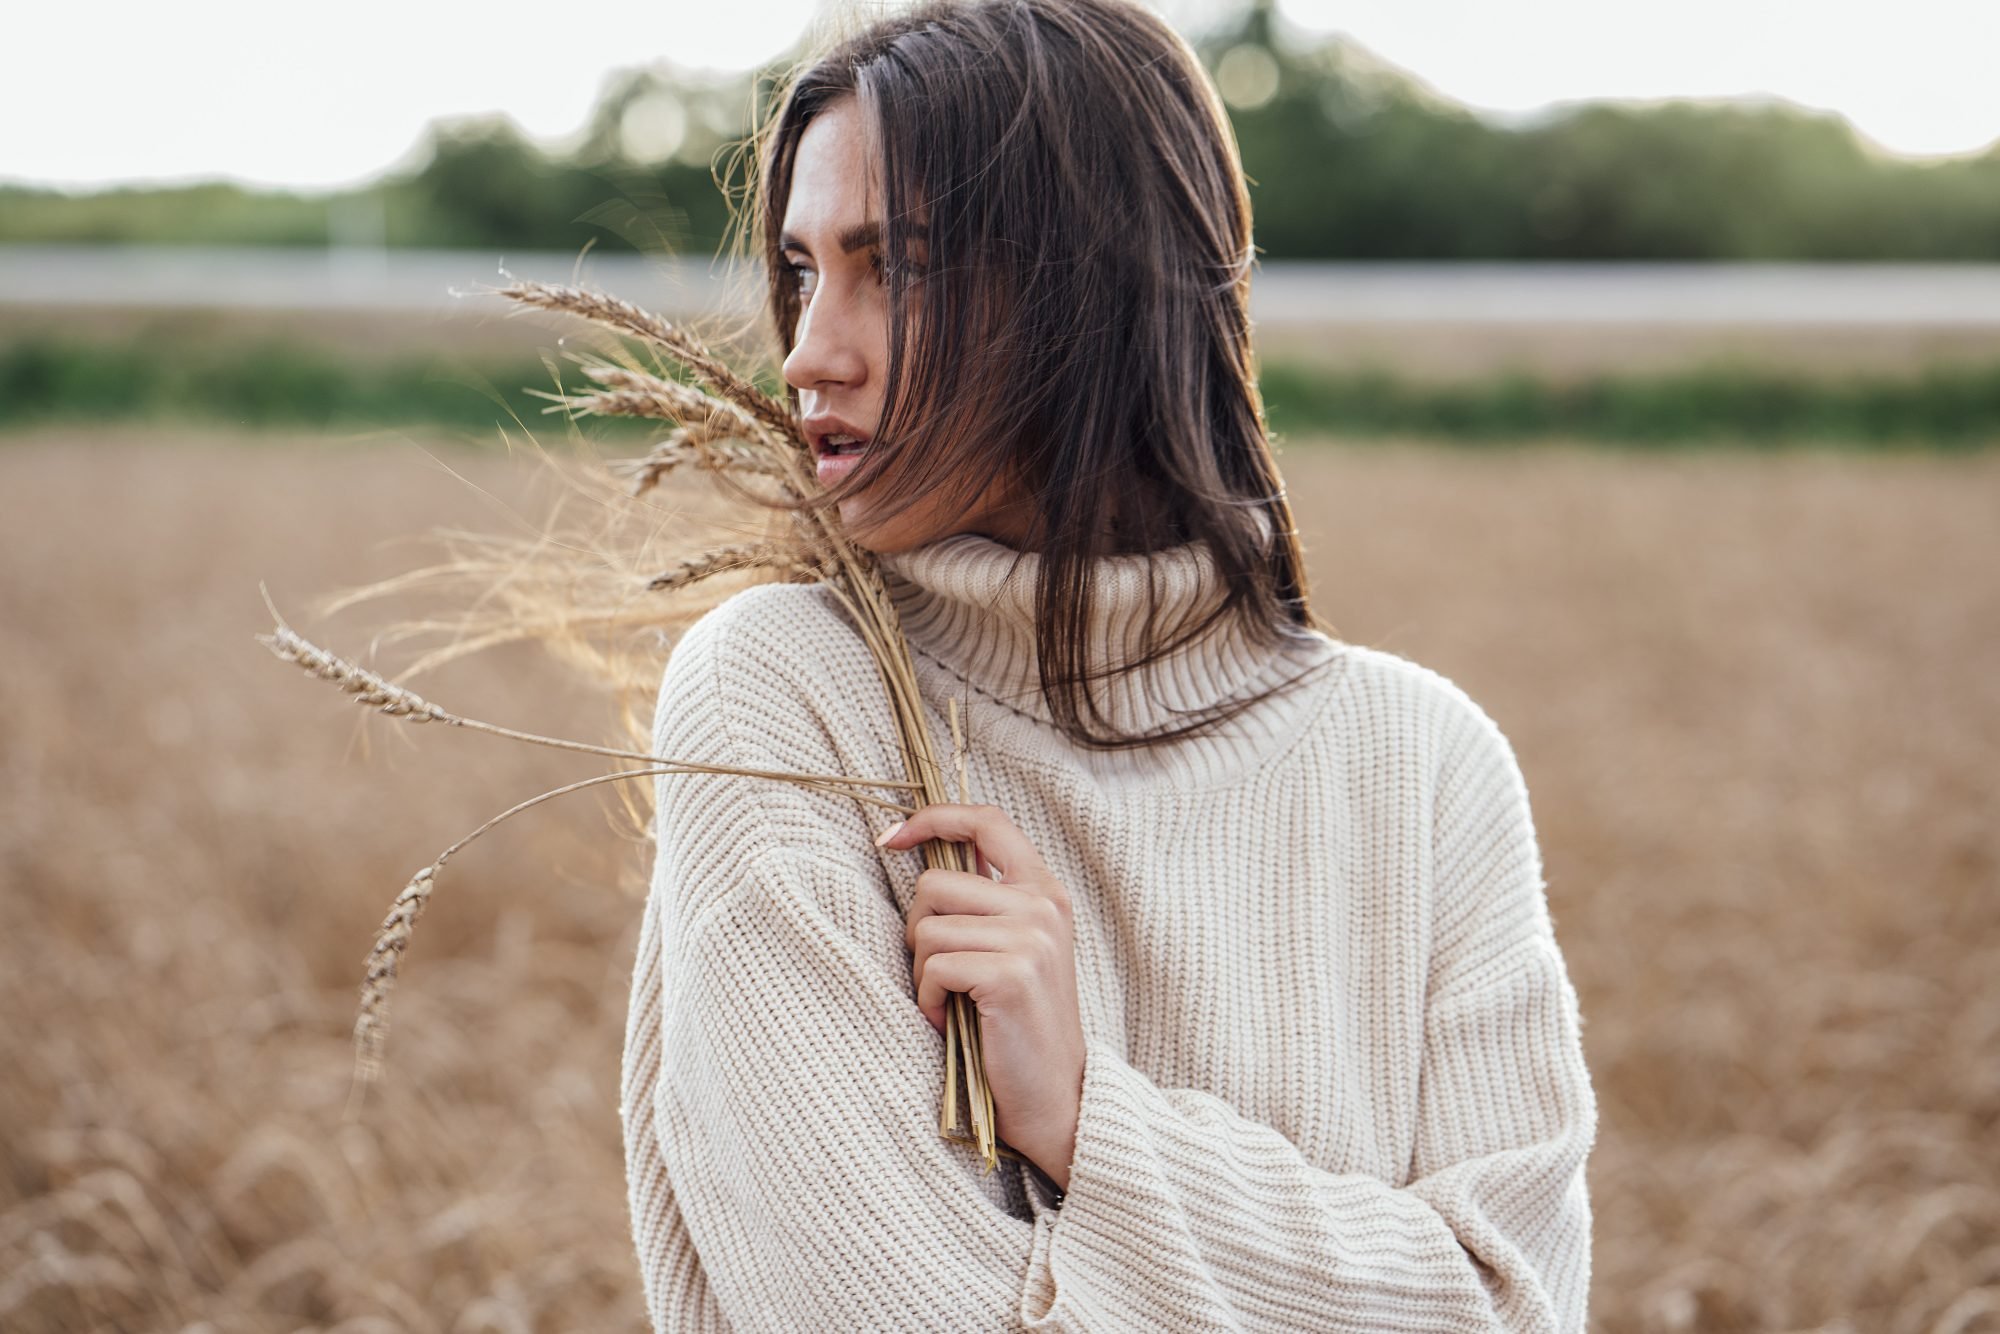 oversized-sweater: woman outdoors wearing cozy oversized sweater